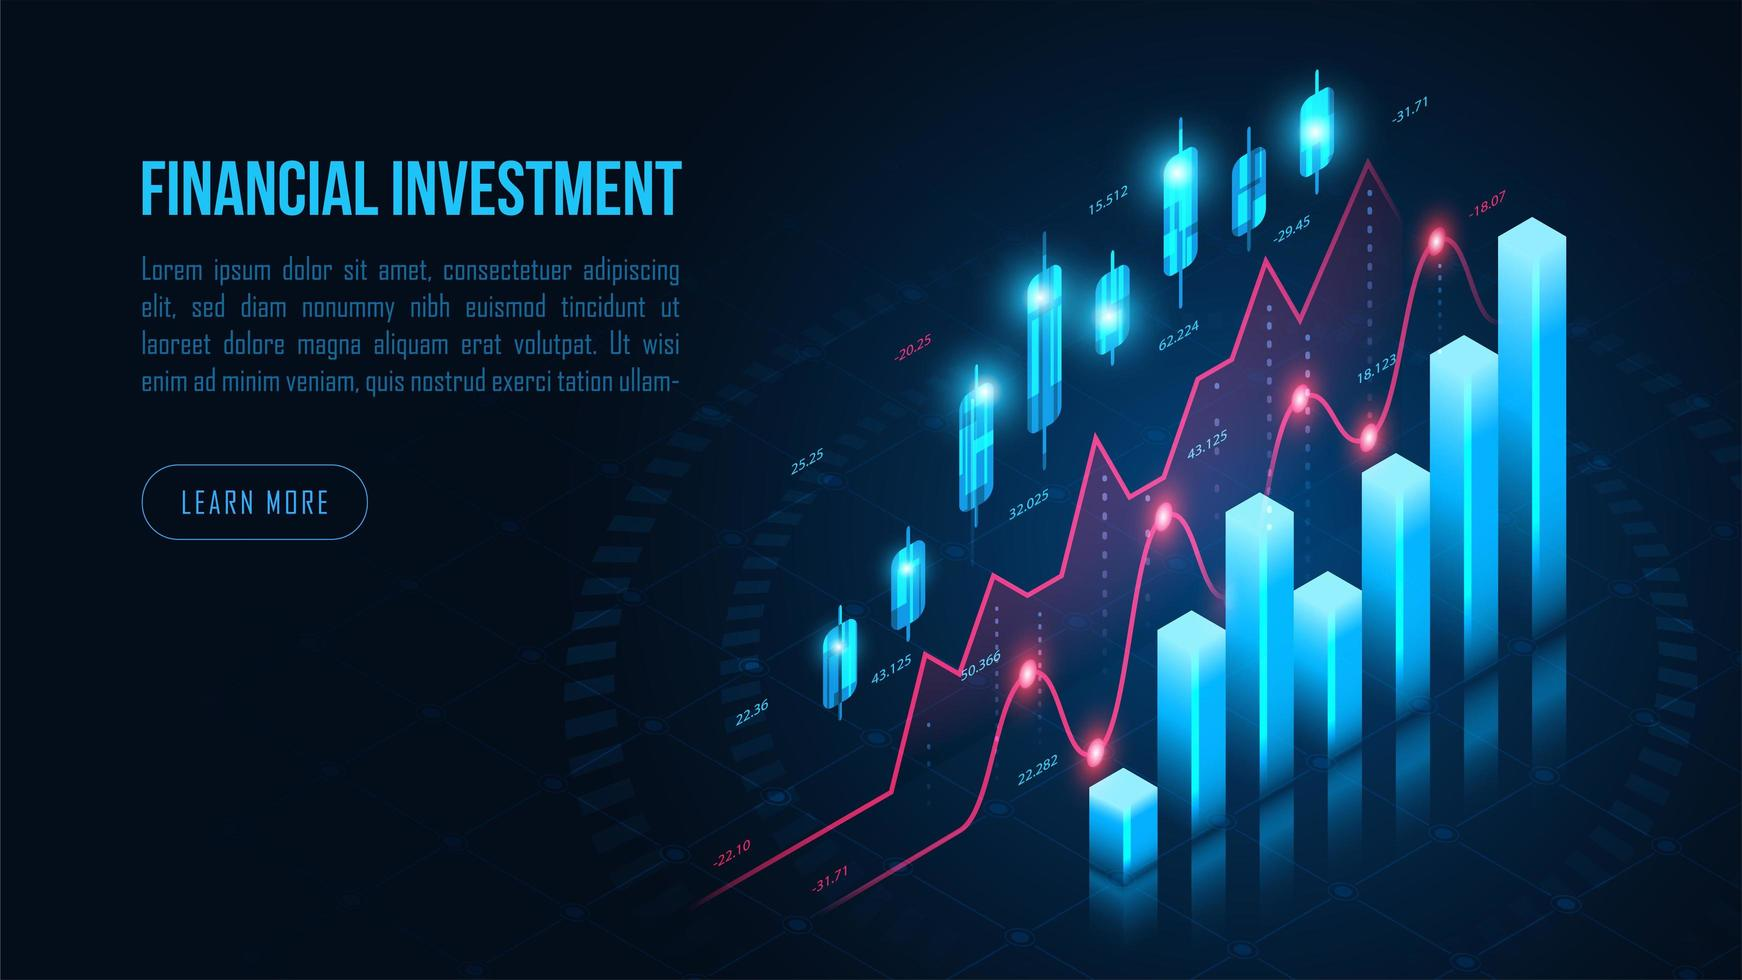 Glowing isometric stock or forex trading graph vector